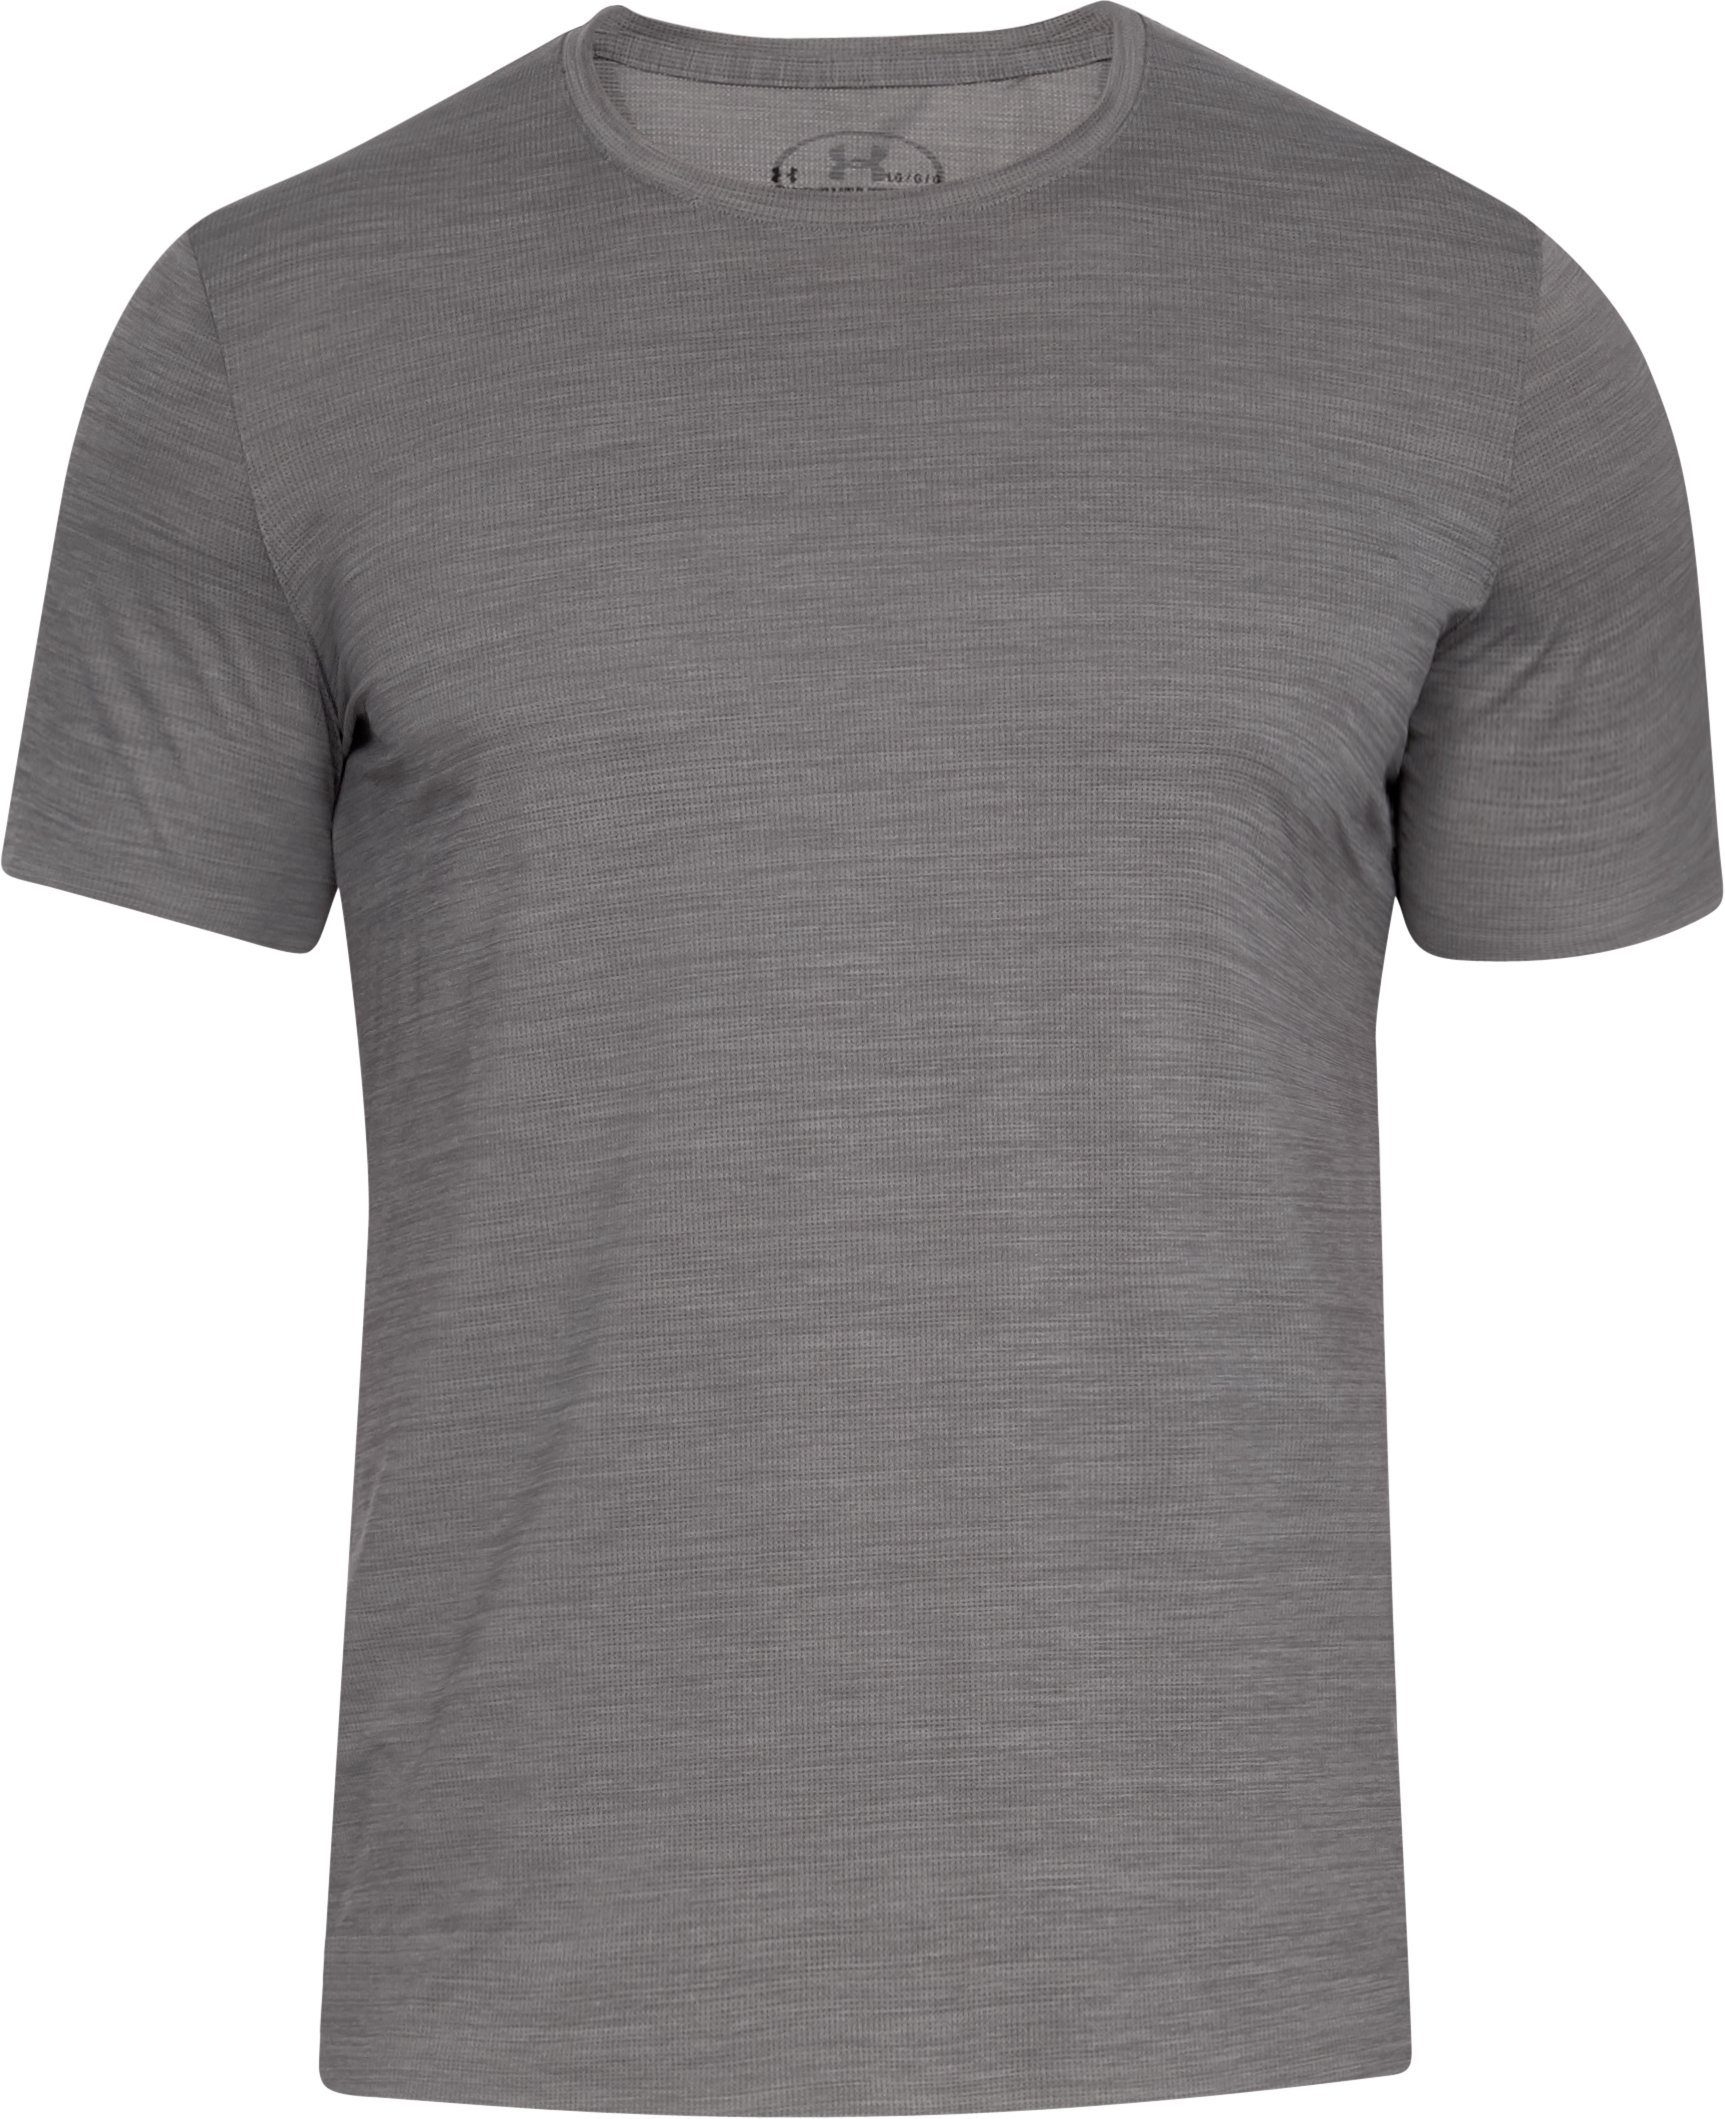 Men's ArmourVent® Short Sleeve Crew, CHARCOAL LIGHT HEATHER,